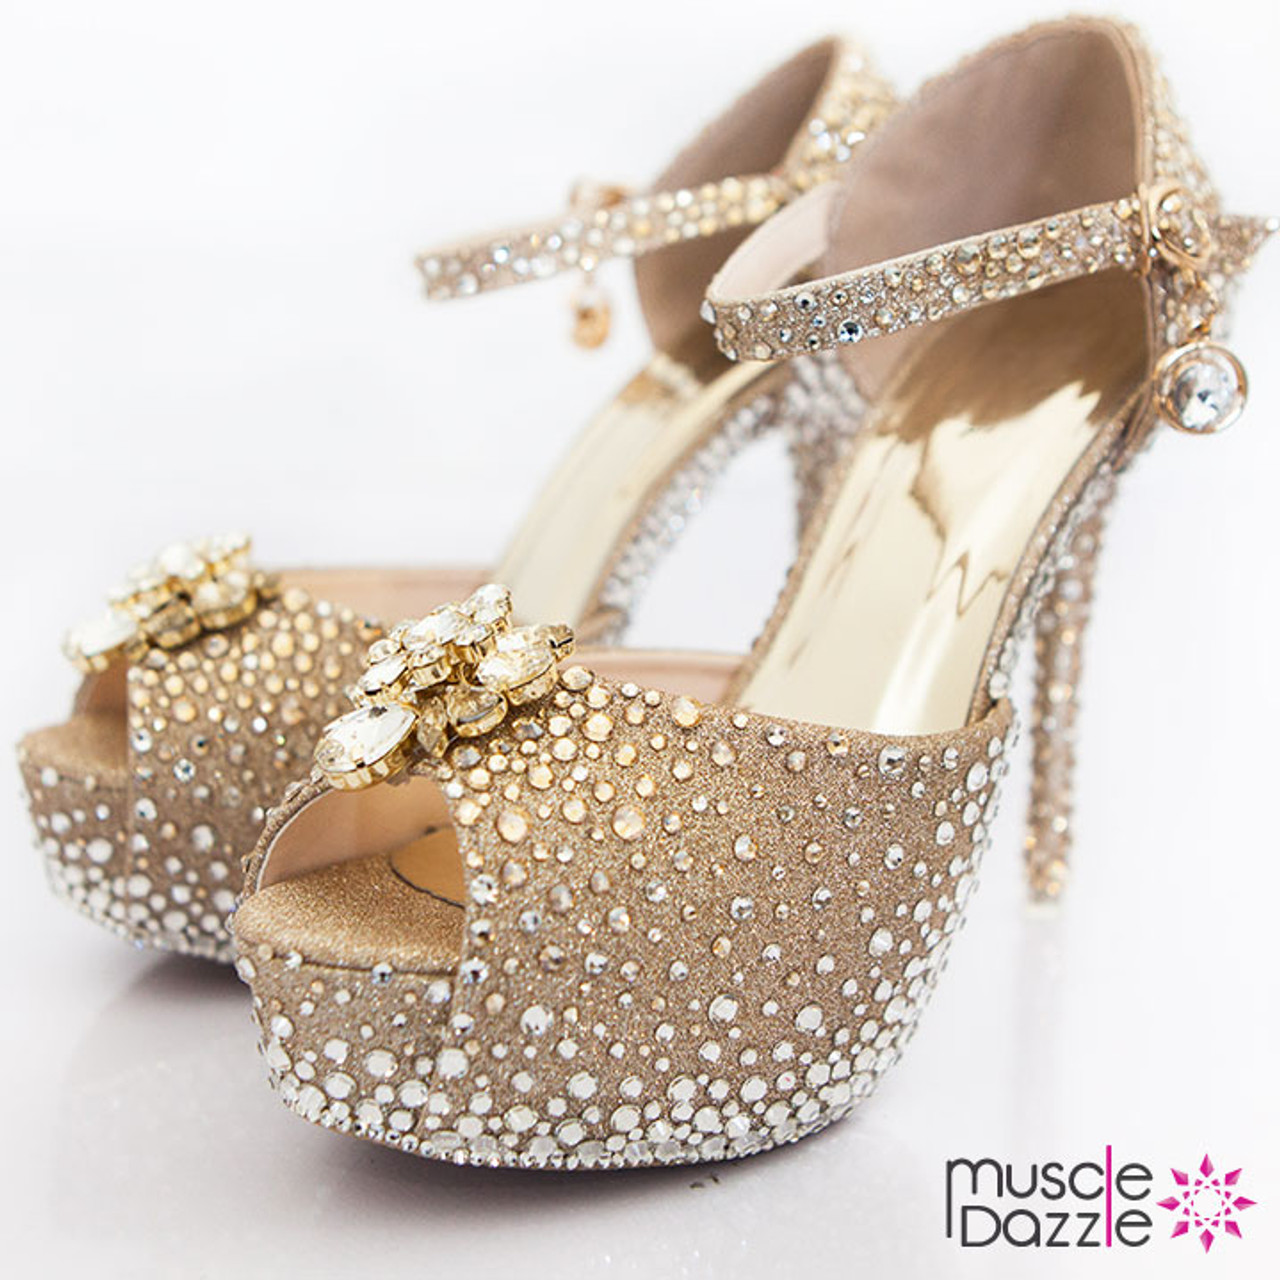 Glittery gold high heel platform pumps with gold and silver crystals c9e33ba1a0